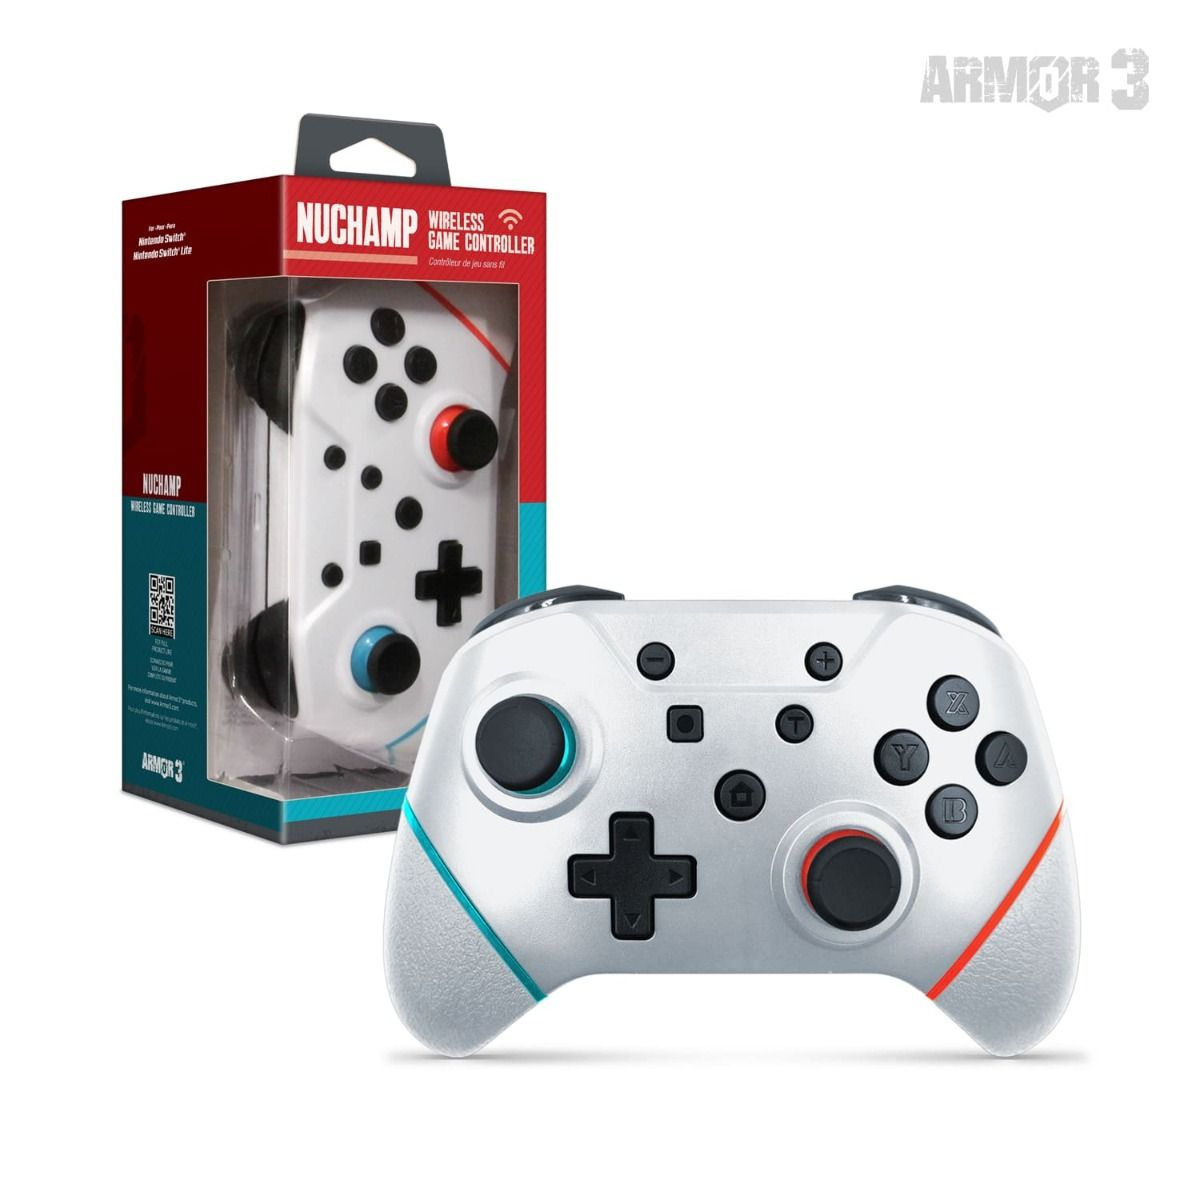 Nuchamp Wireless Game Controller For The Nintendo Switch/lite - Armor3